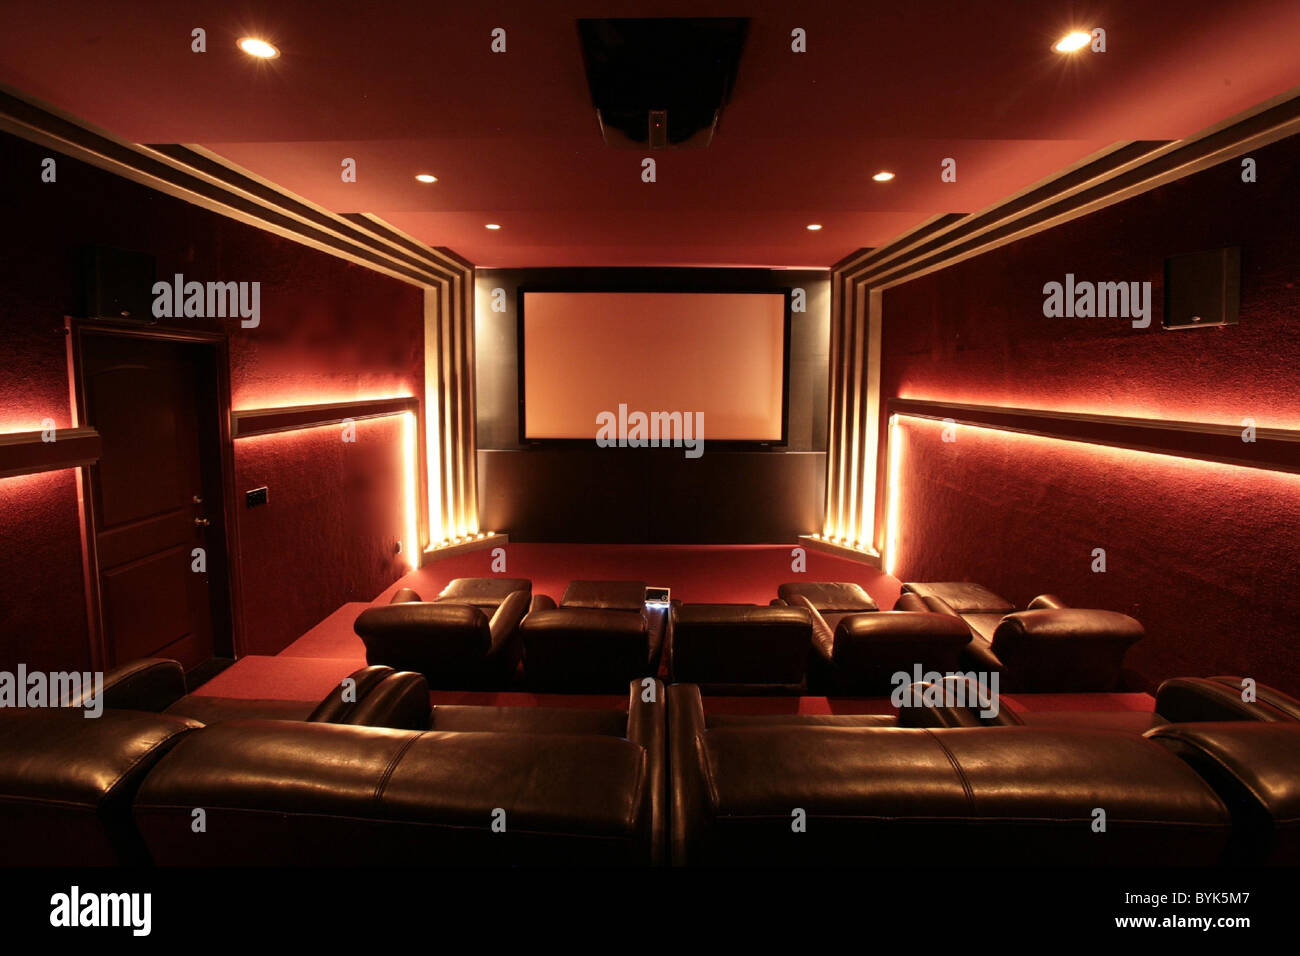 The Stag - Skywalker-inspired Home Theatre Electronic House has ...